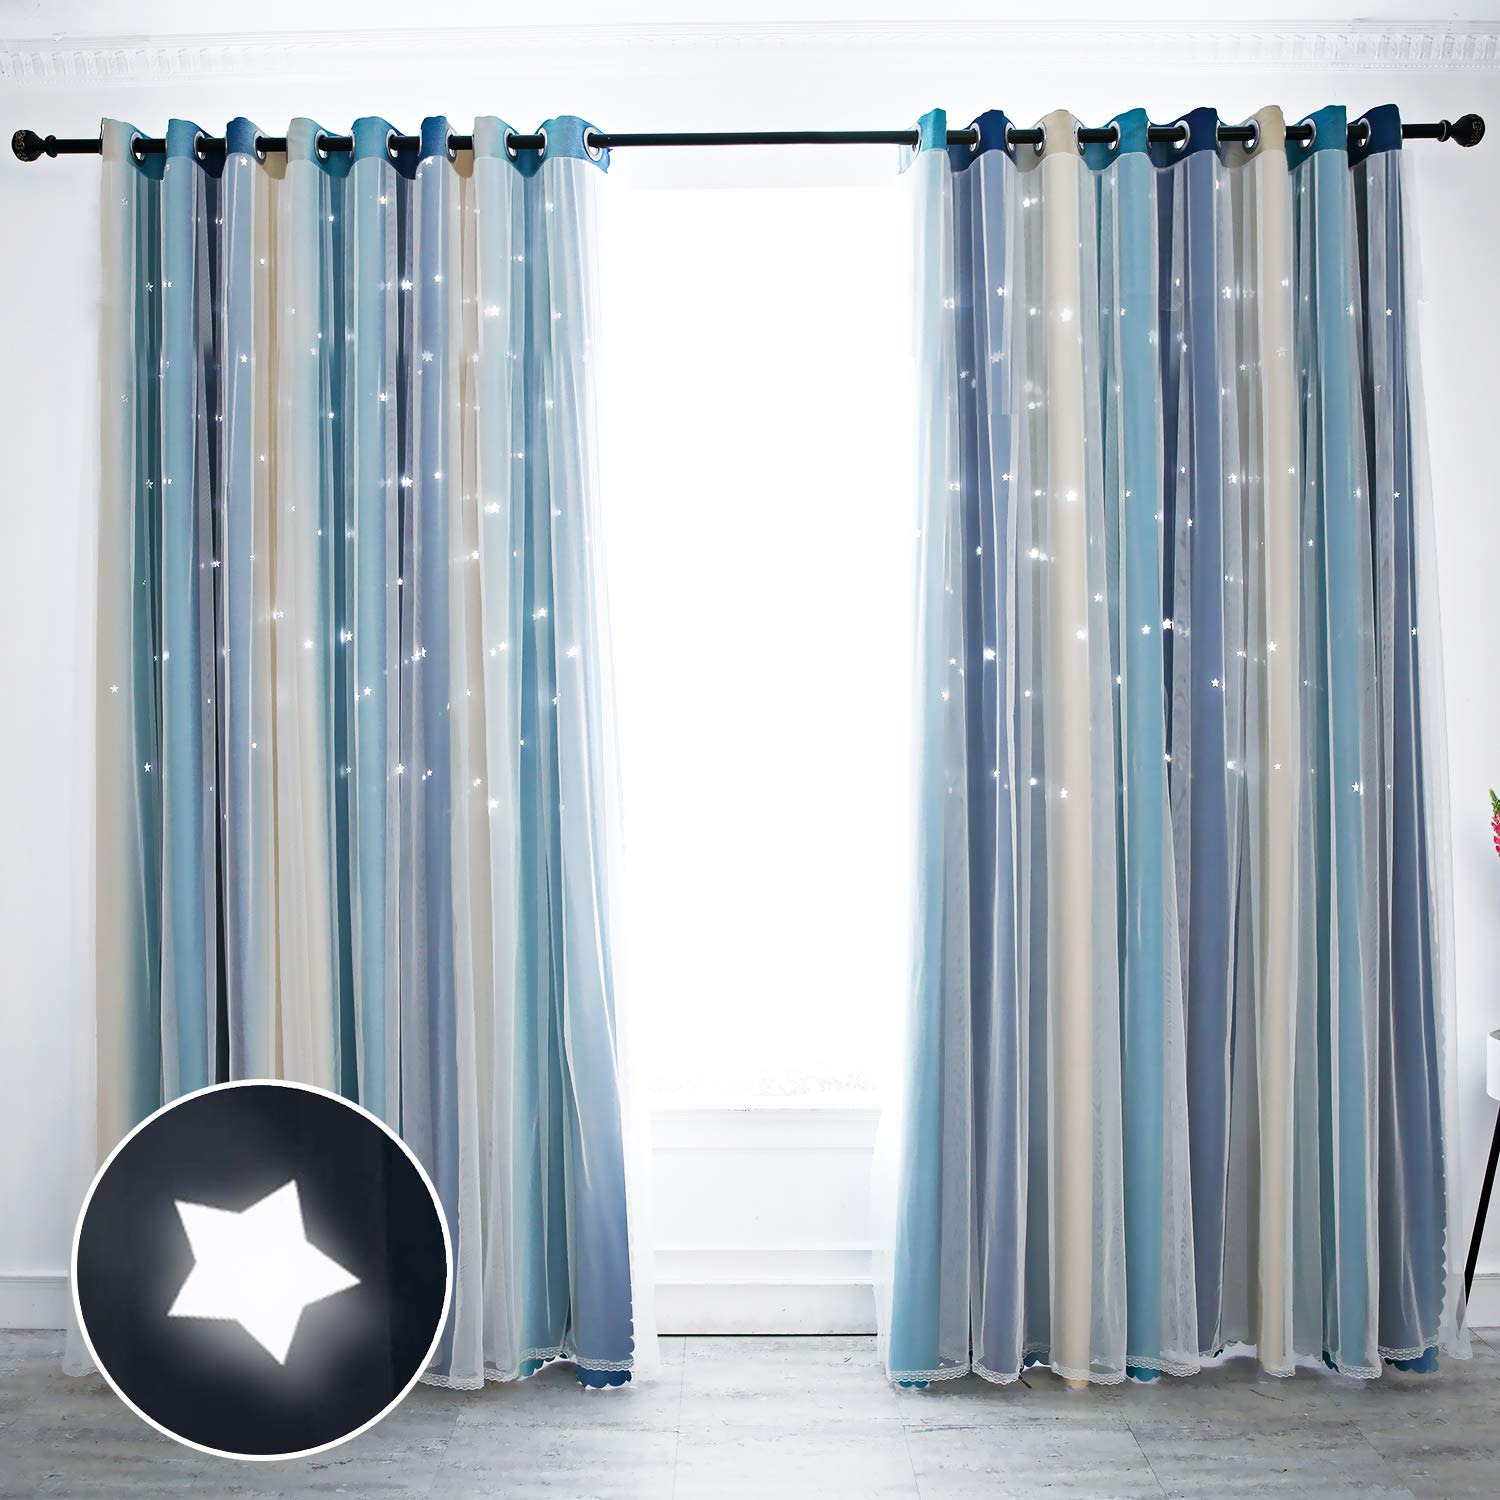 Star Colorful Out Curtains Cut Curtains Blackout Kid For Double fb Bedroom Layer